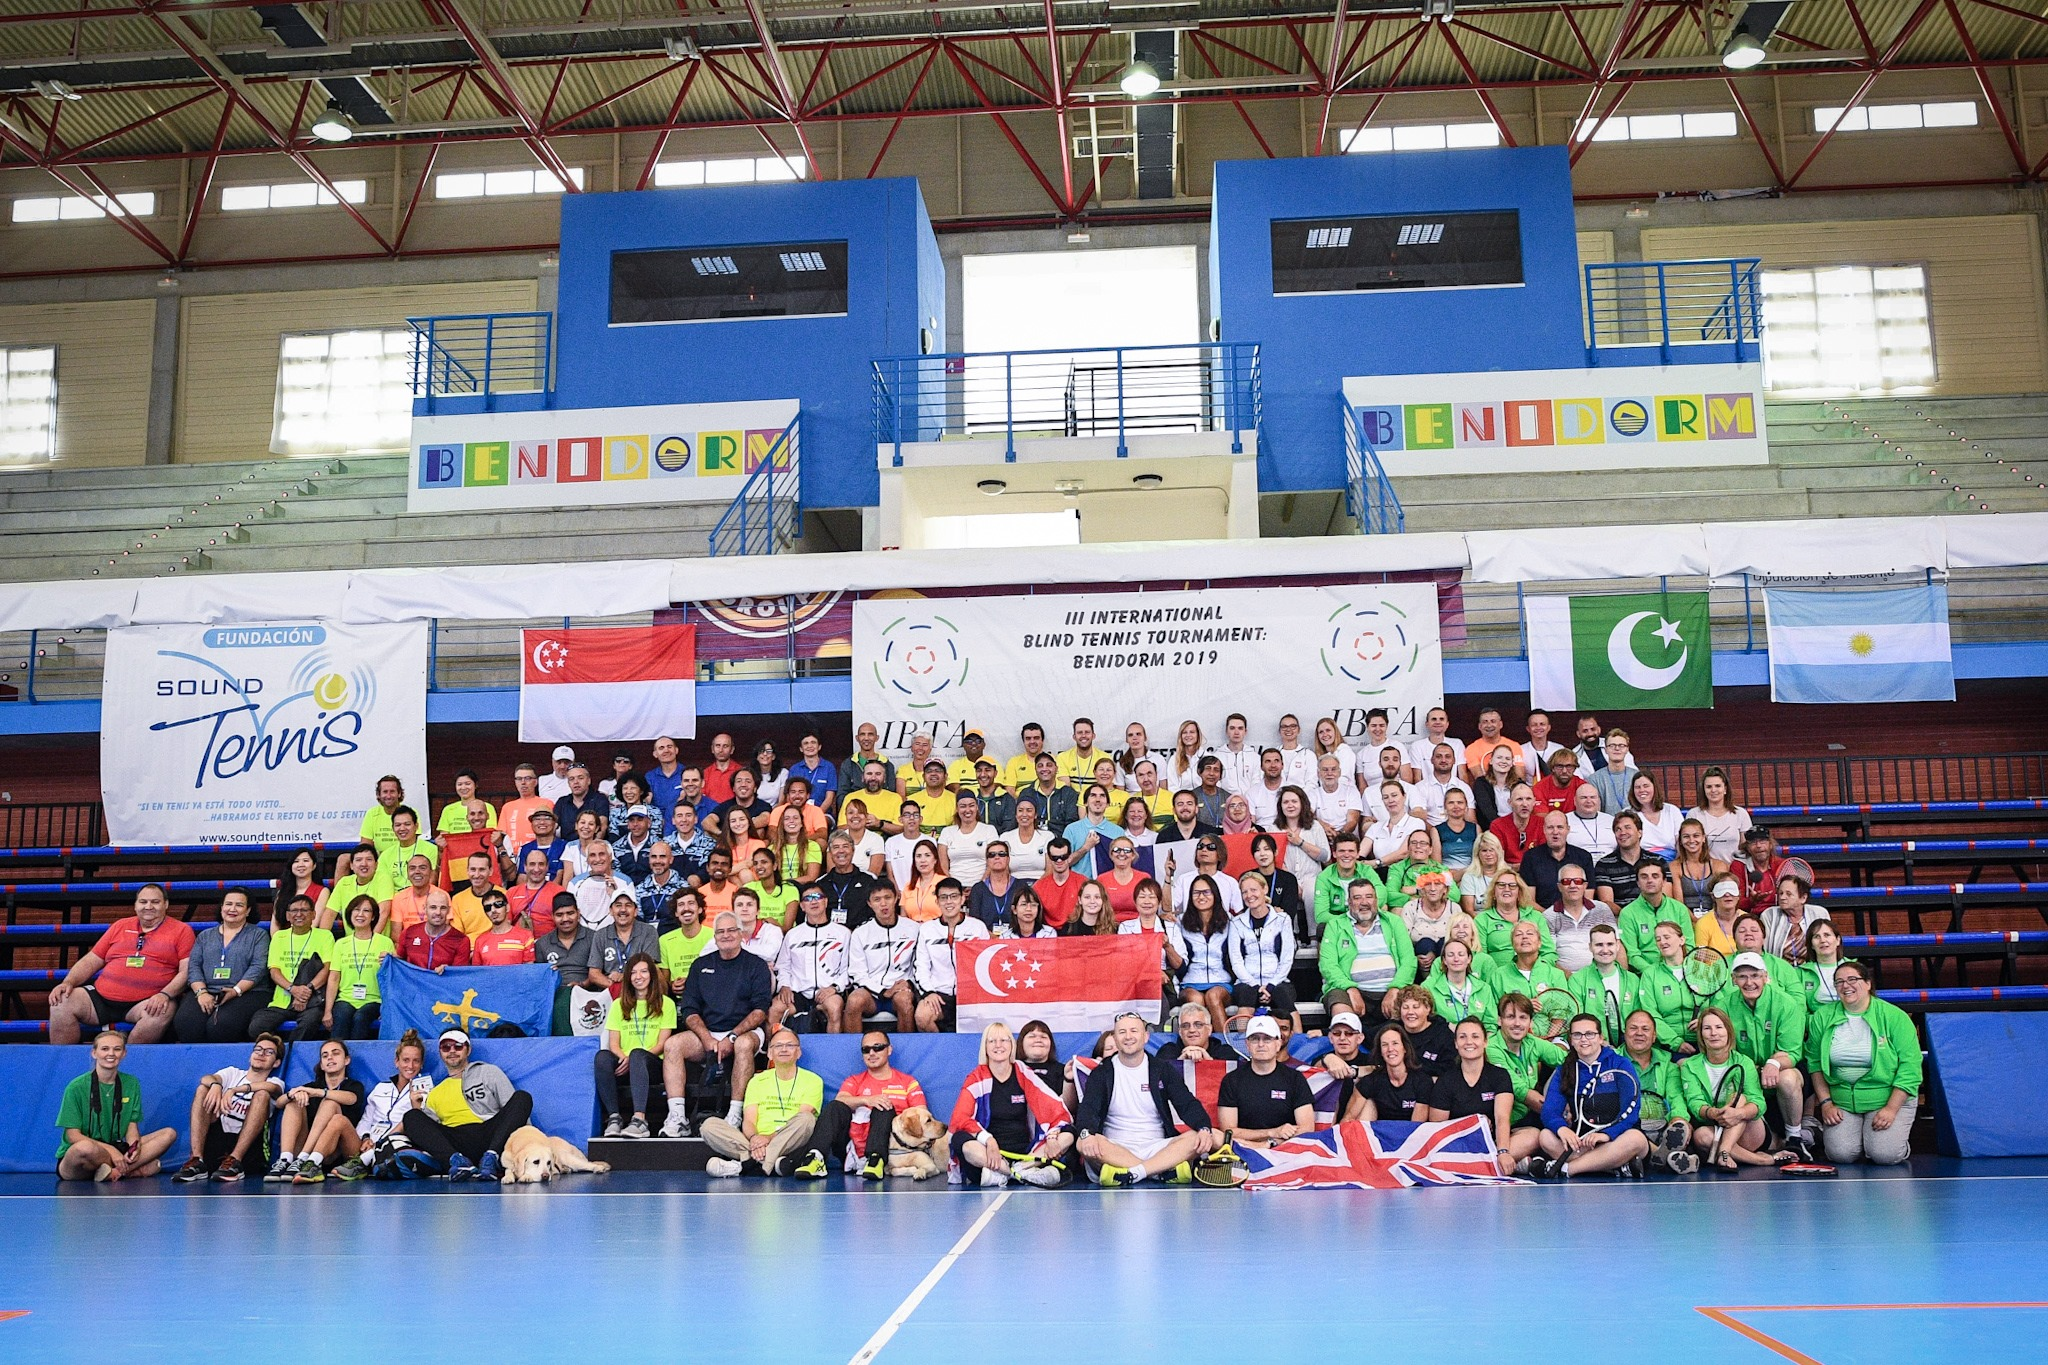 Group photo of the National Tennis teams with blind and visually impaired players from 15 countries at the 2019 IBTA International Championships in Benidorm, Spain.